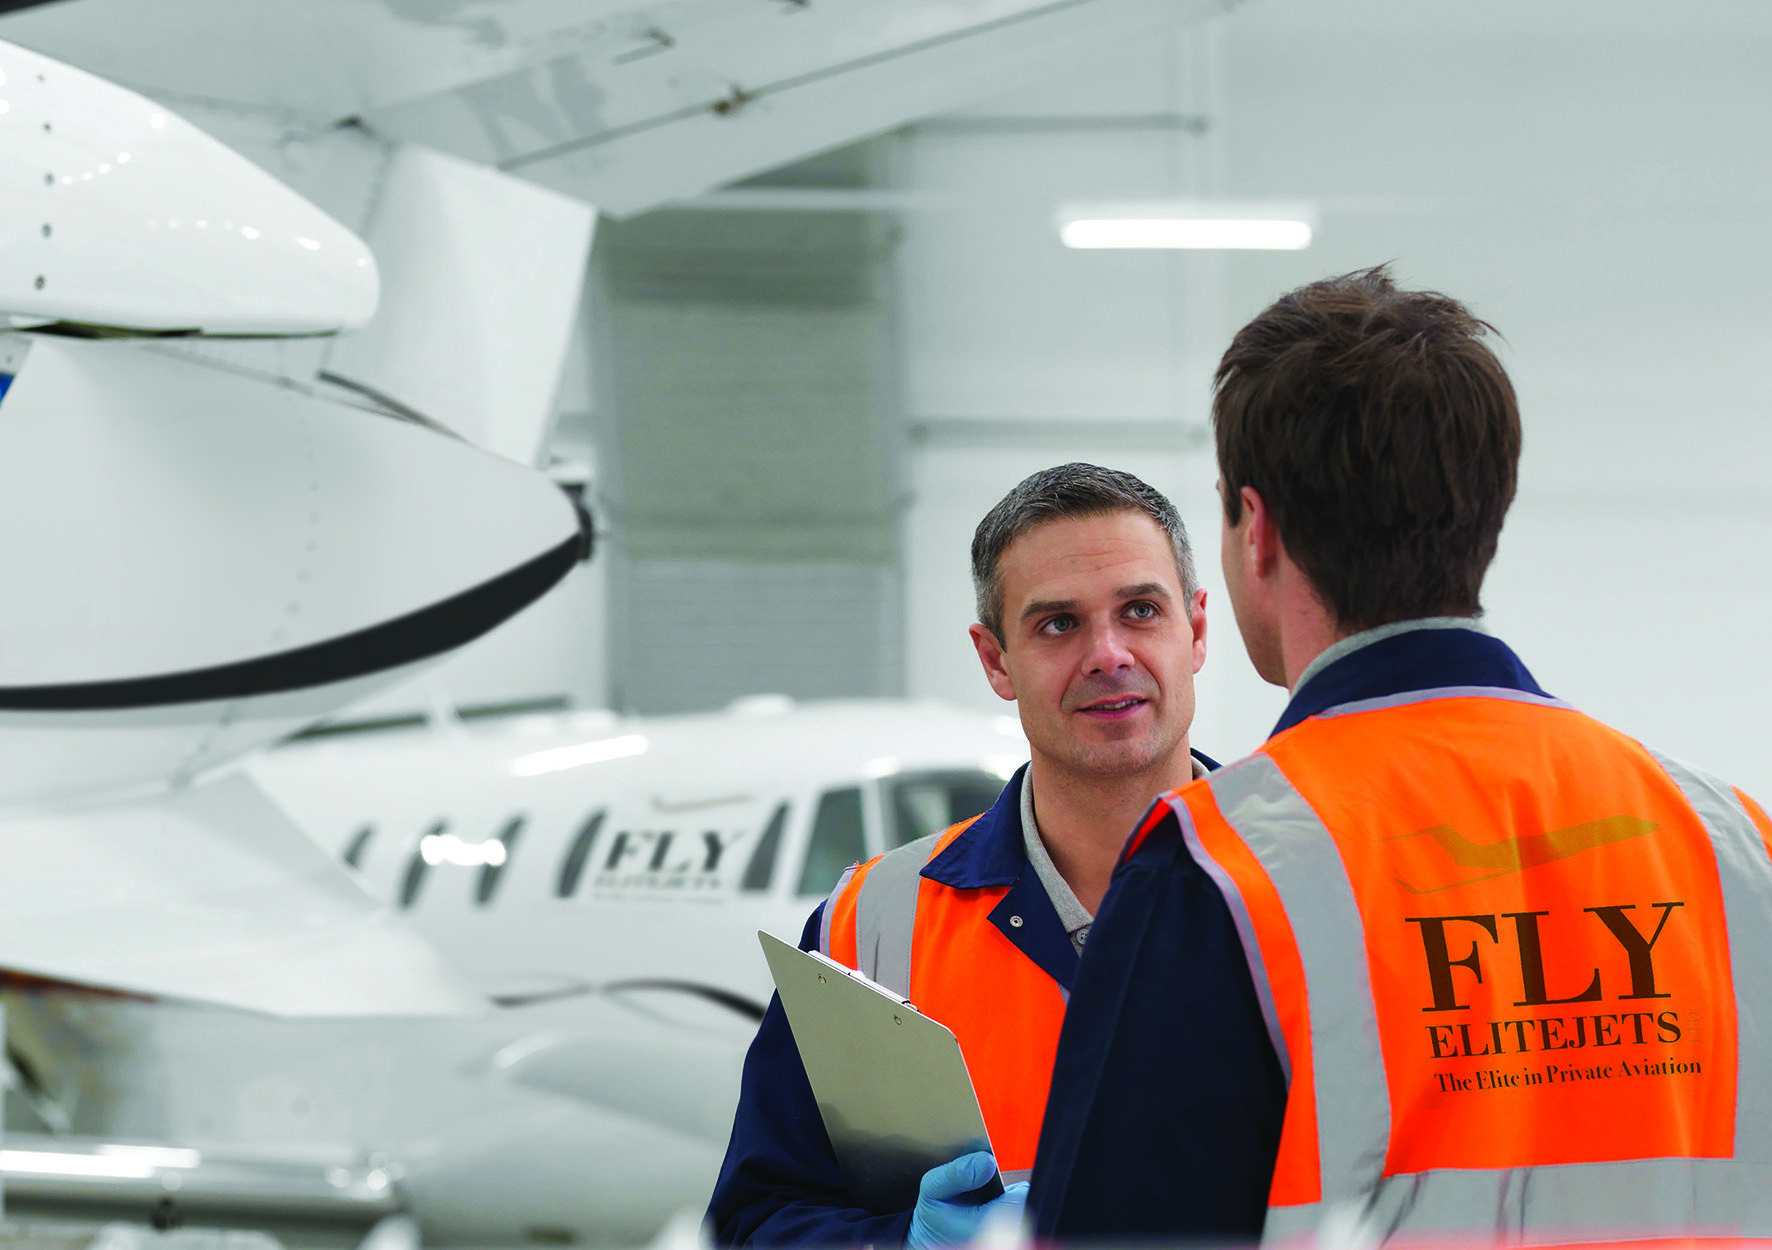 Engineers in aircraft hangar with jets